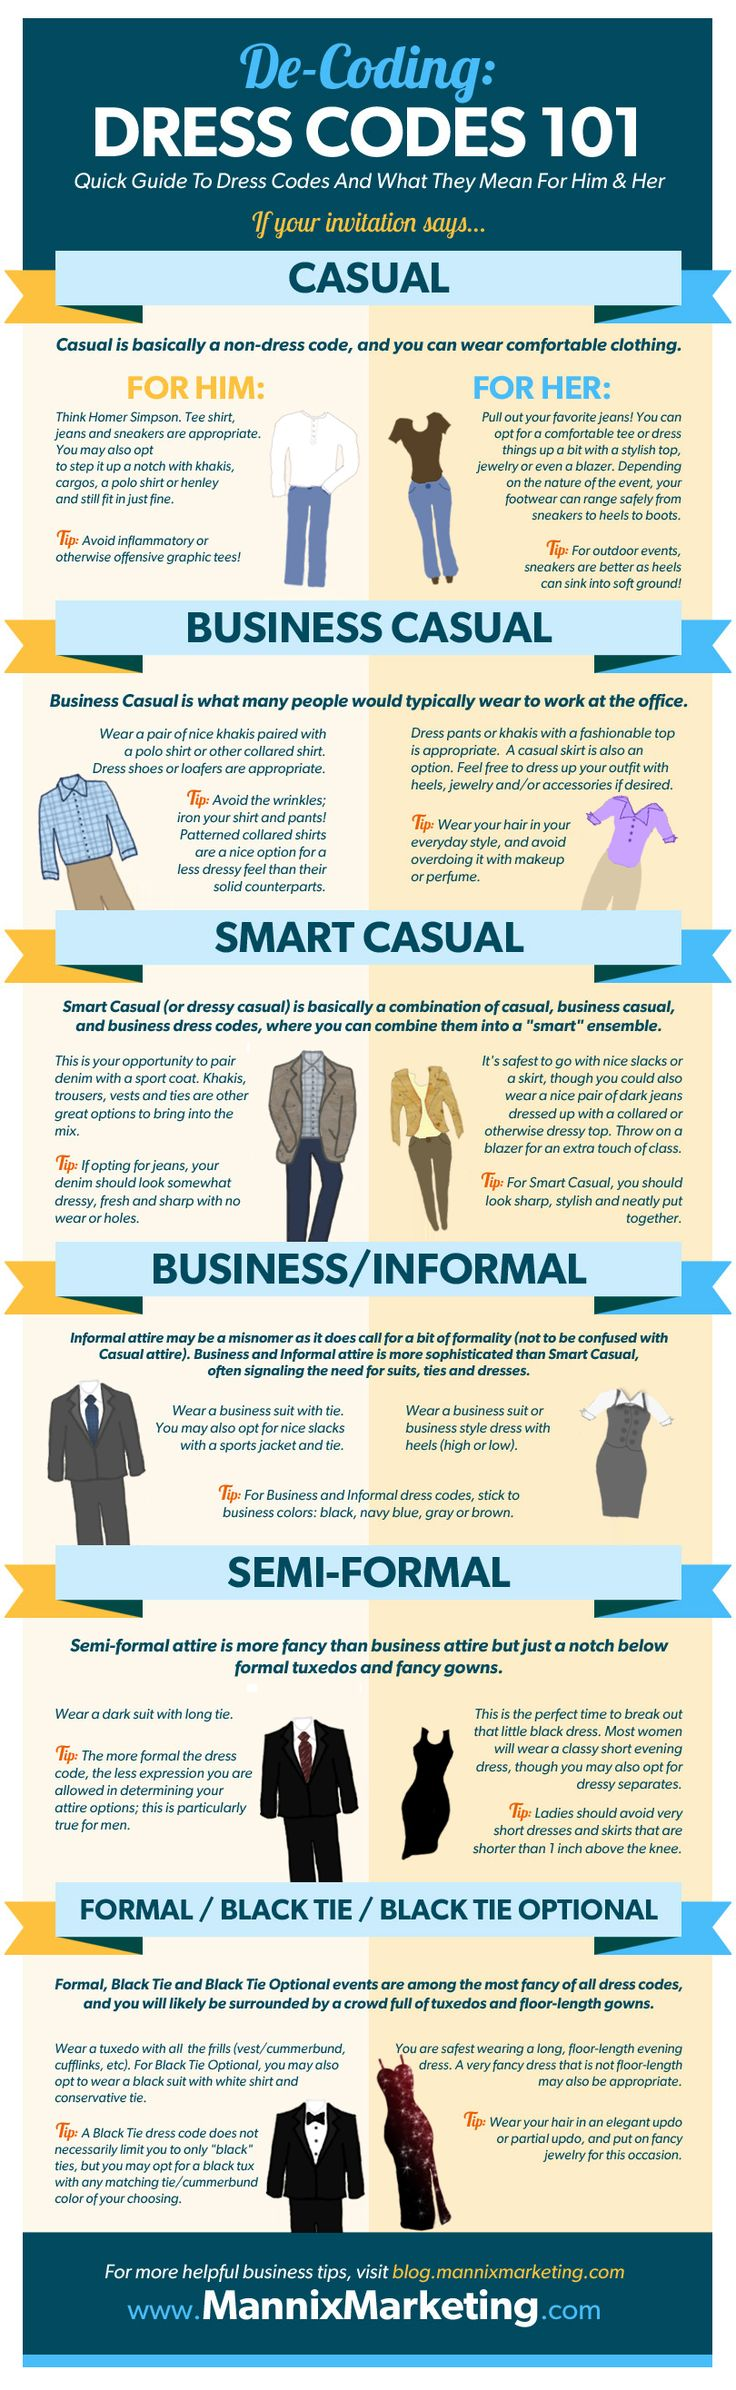 Dress Codes & What They Mean – His & Her Guide To Appropriate Attire For Each Dress Code.       Similar to PCCs?